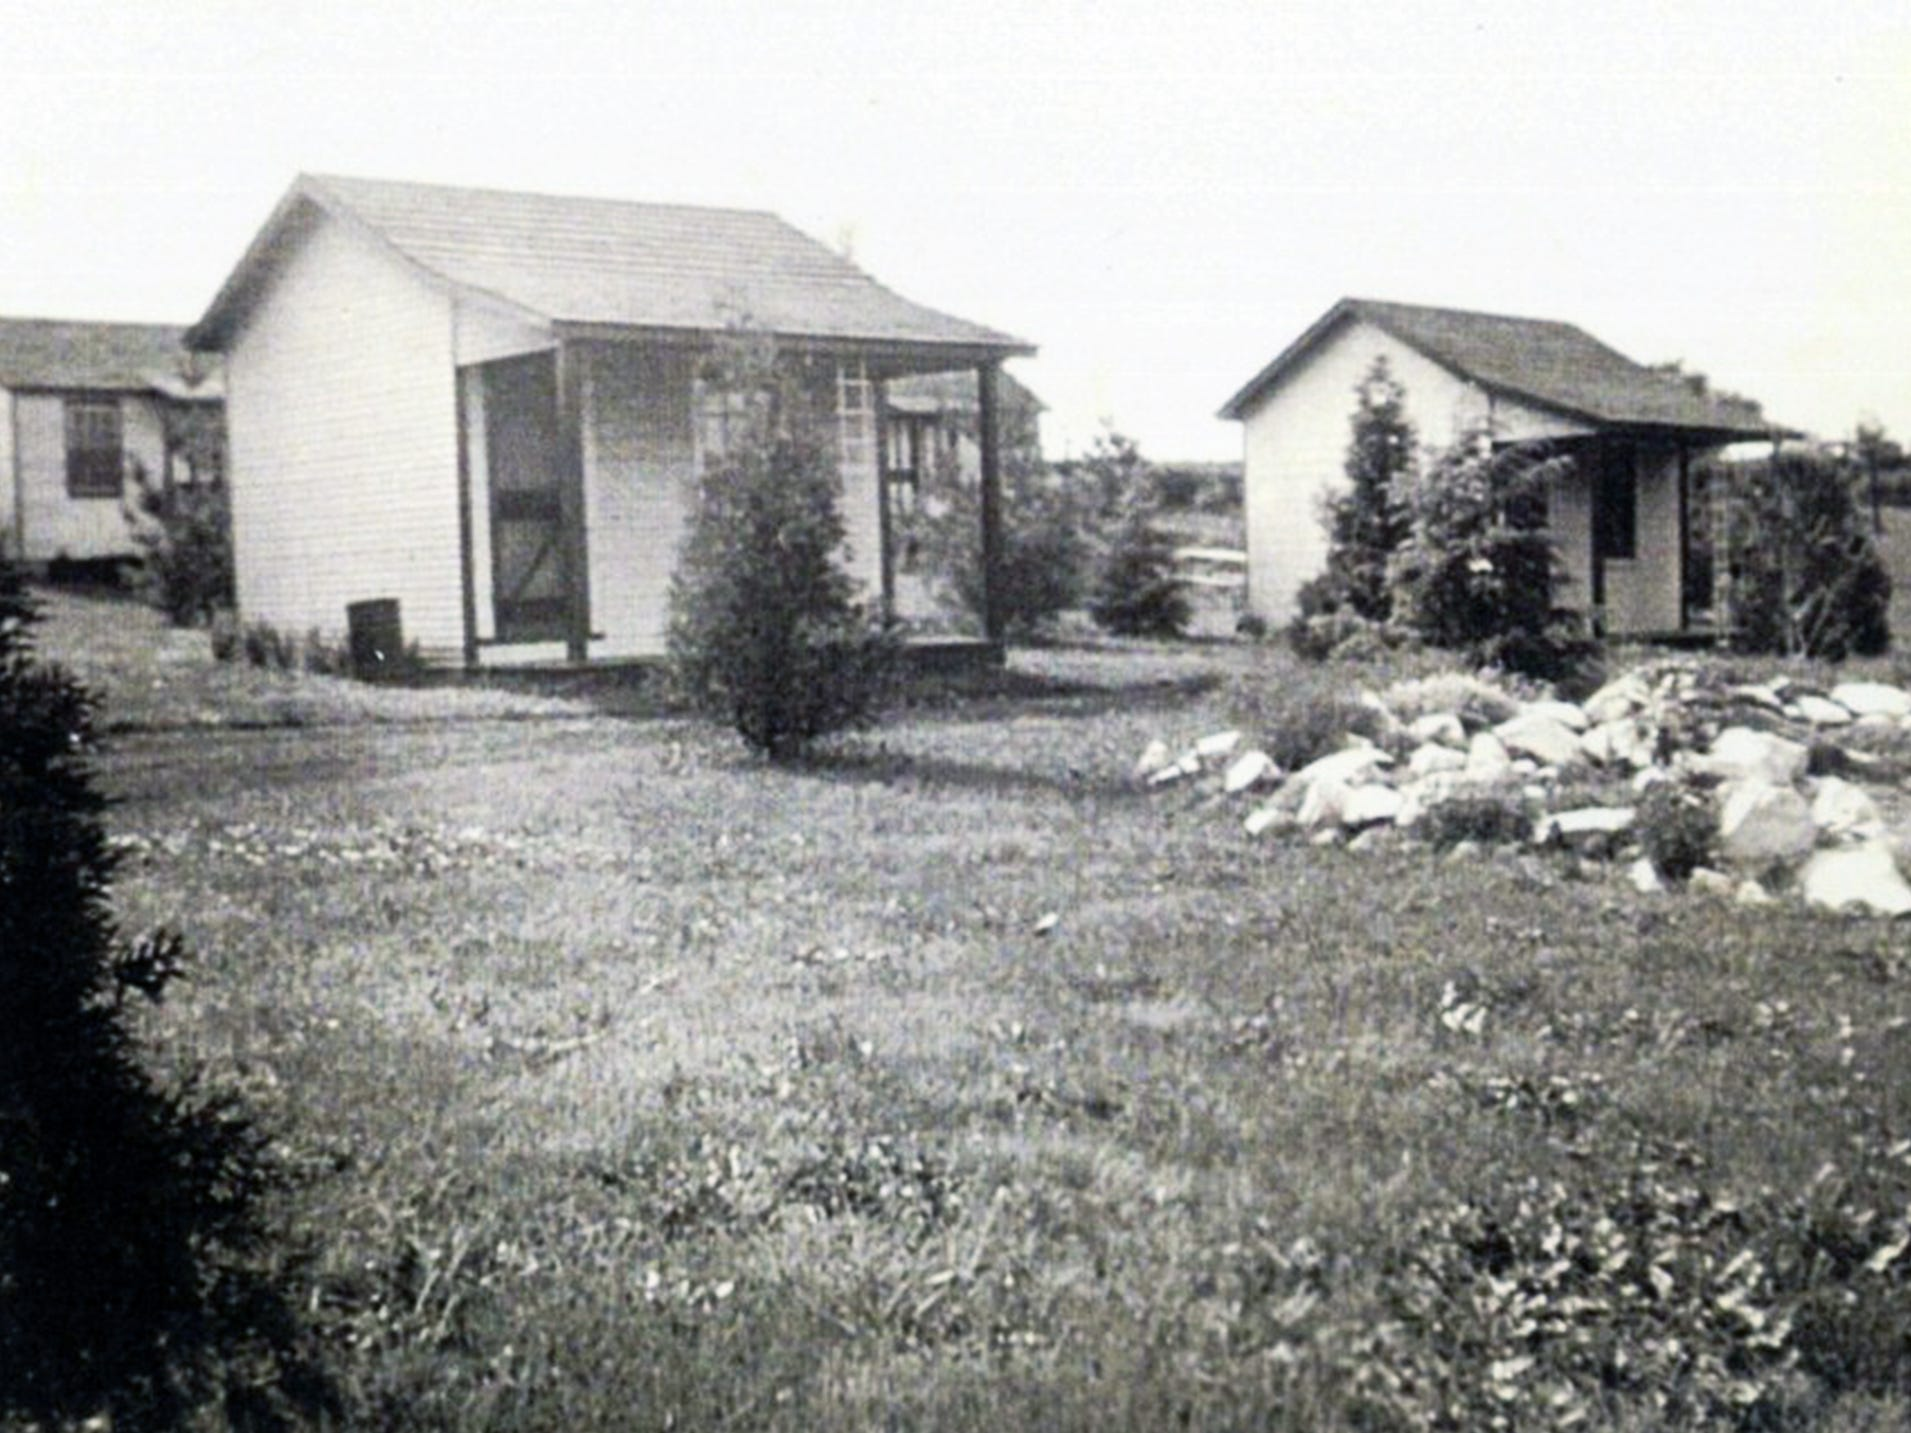 These are Smith's cottages as they looked in this undated photo.